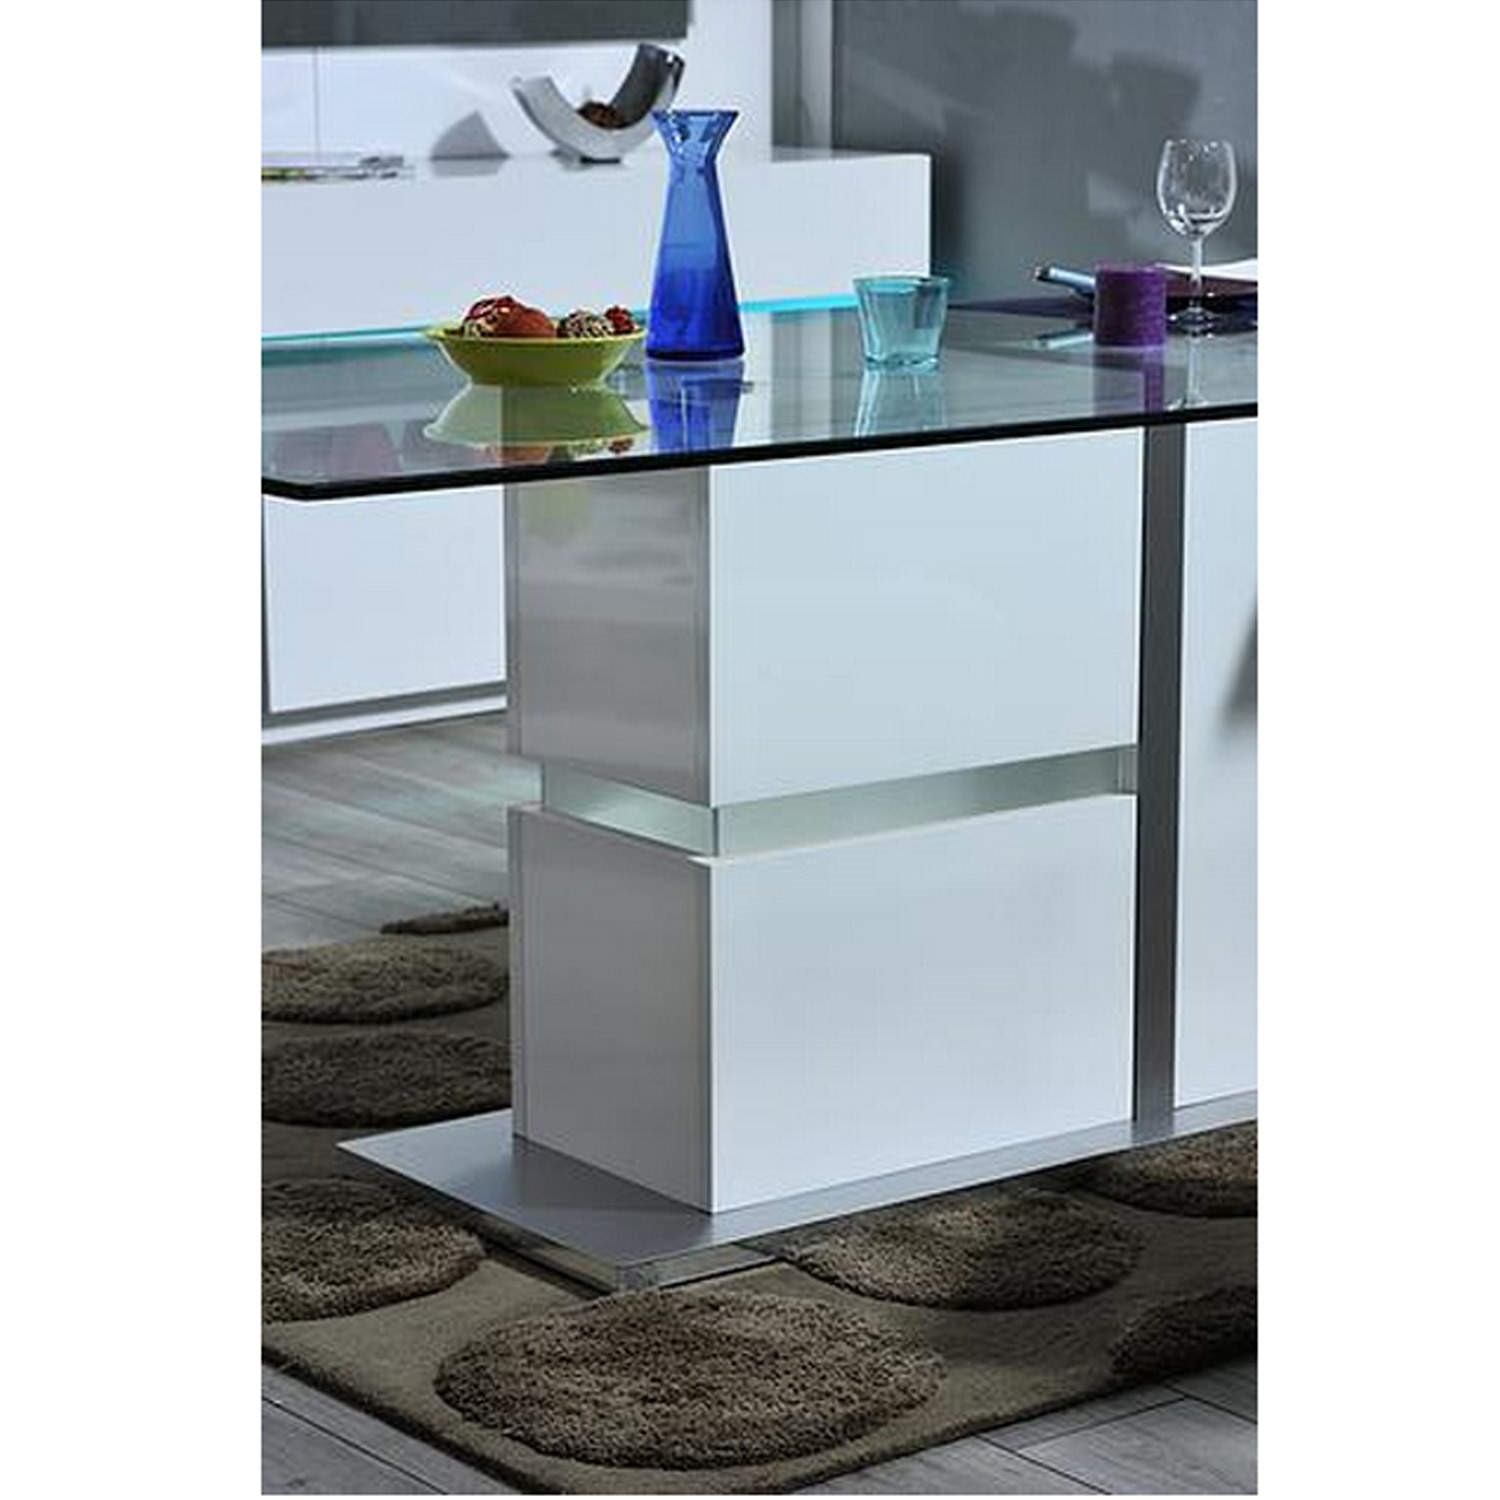 Sciae Cross 36 Glass Top Dining Table with LED Lit Base  : 14SL27322supersize from furniture123.co.uk size 700 x 700 jpeg 65kB